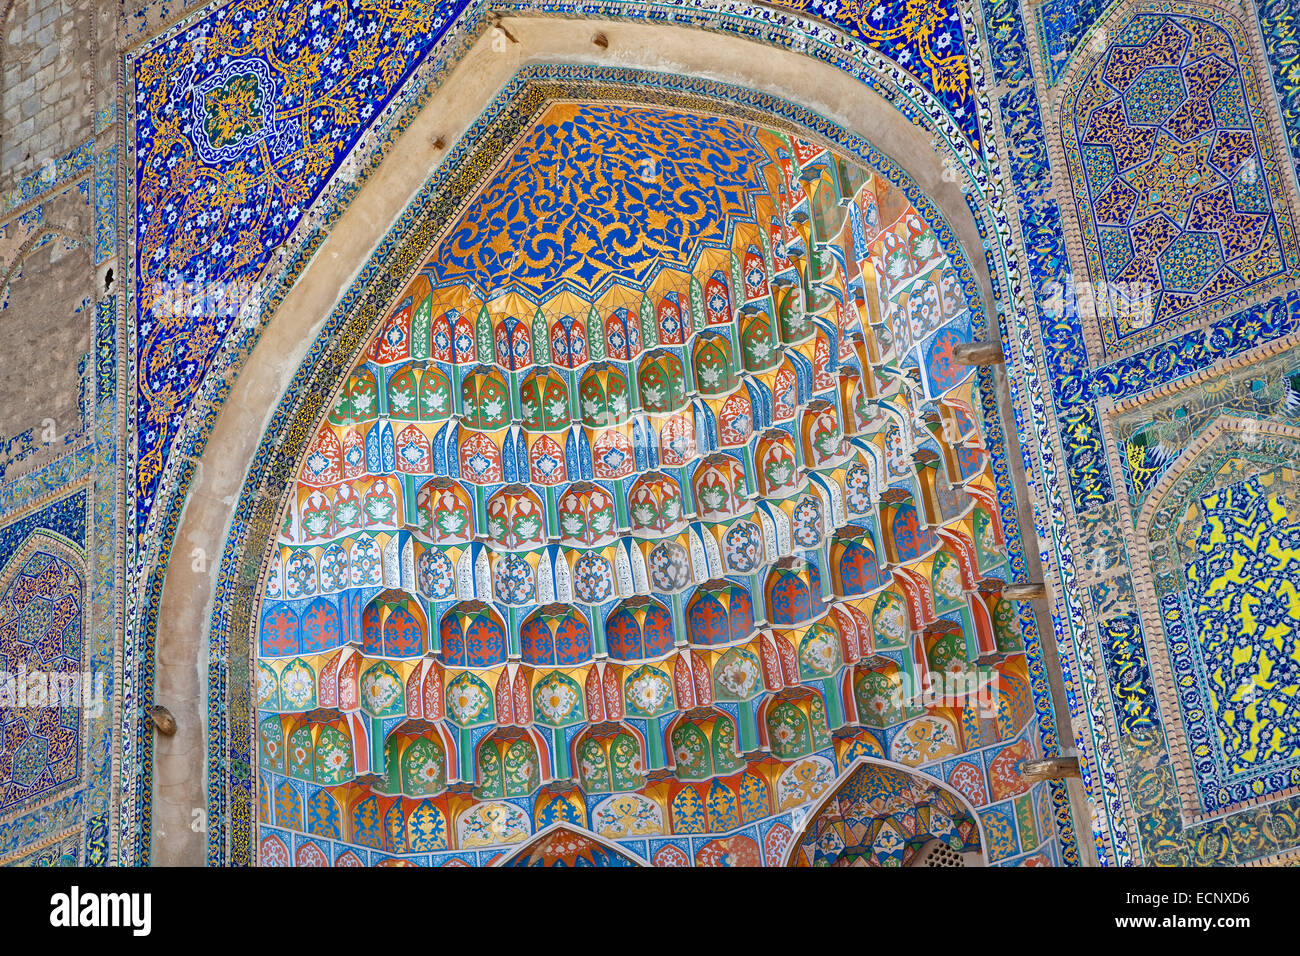 Tiled portal of the Kalyan Mosque, part of the Po-i-Kalyan Complex in Bukhara, Uzbekistan - Stock Image